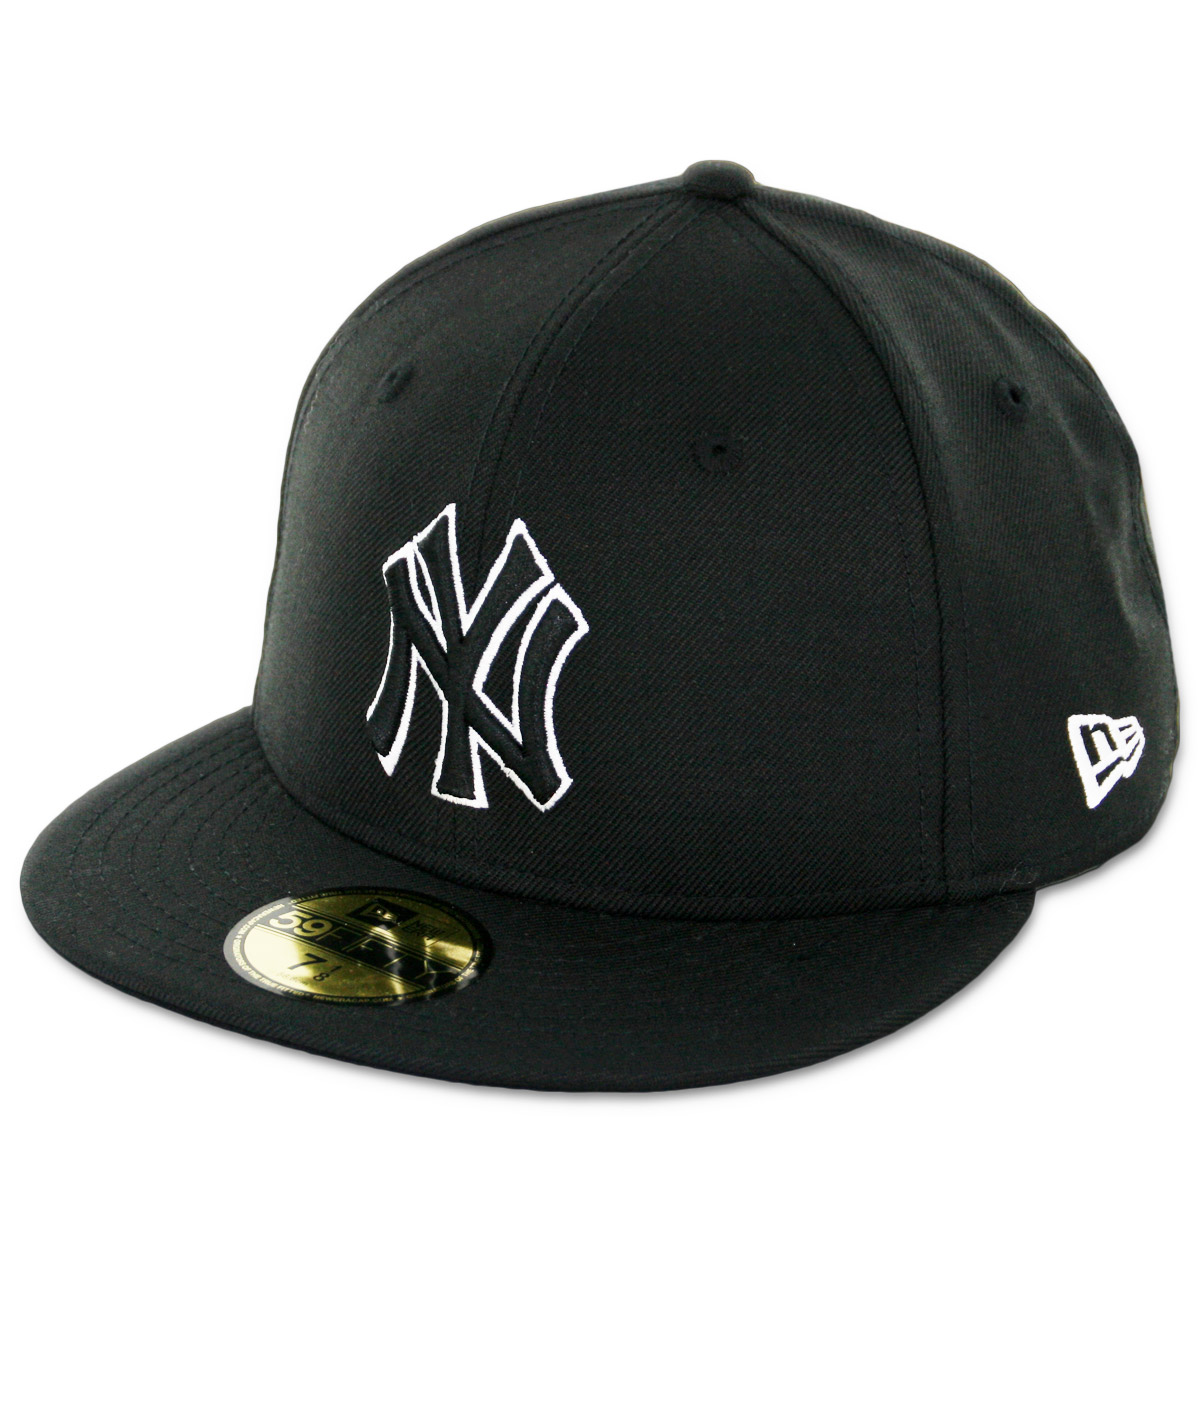 16b4f0f91c New Era 59Fifty New York Yankees Fitted Black